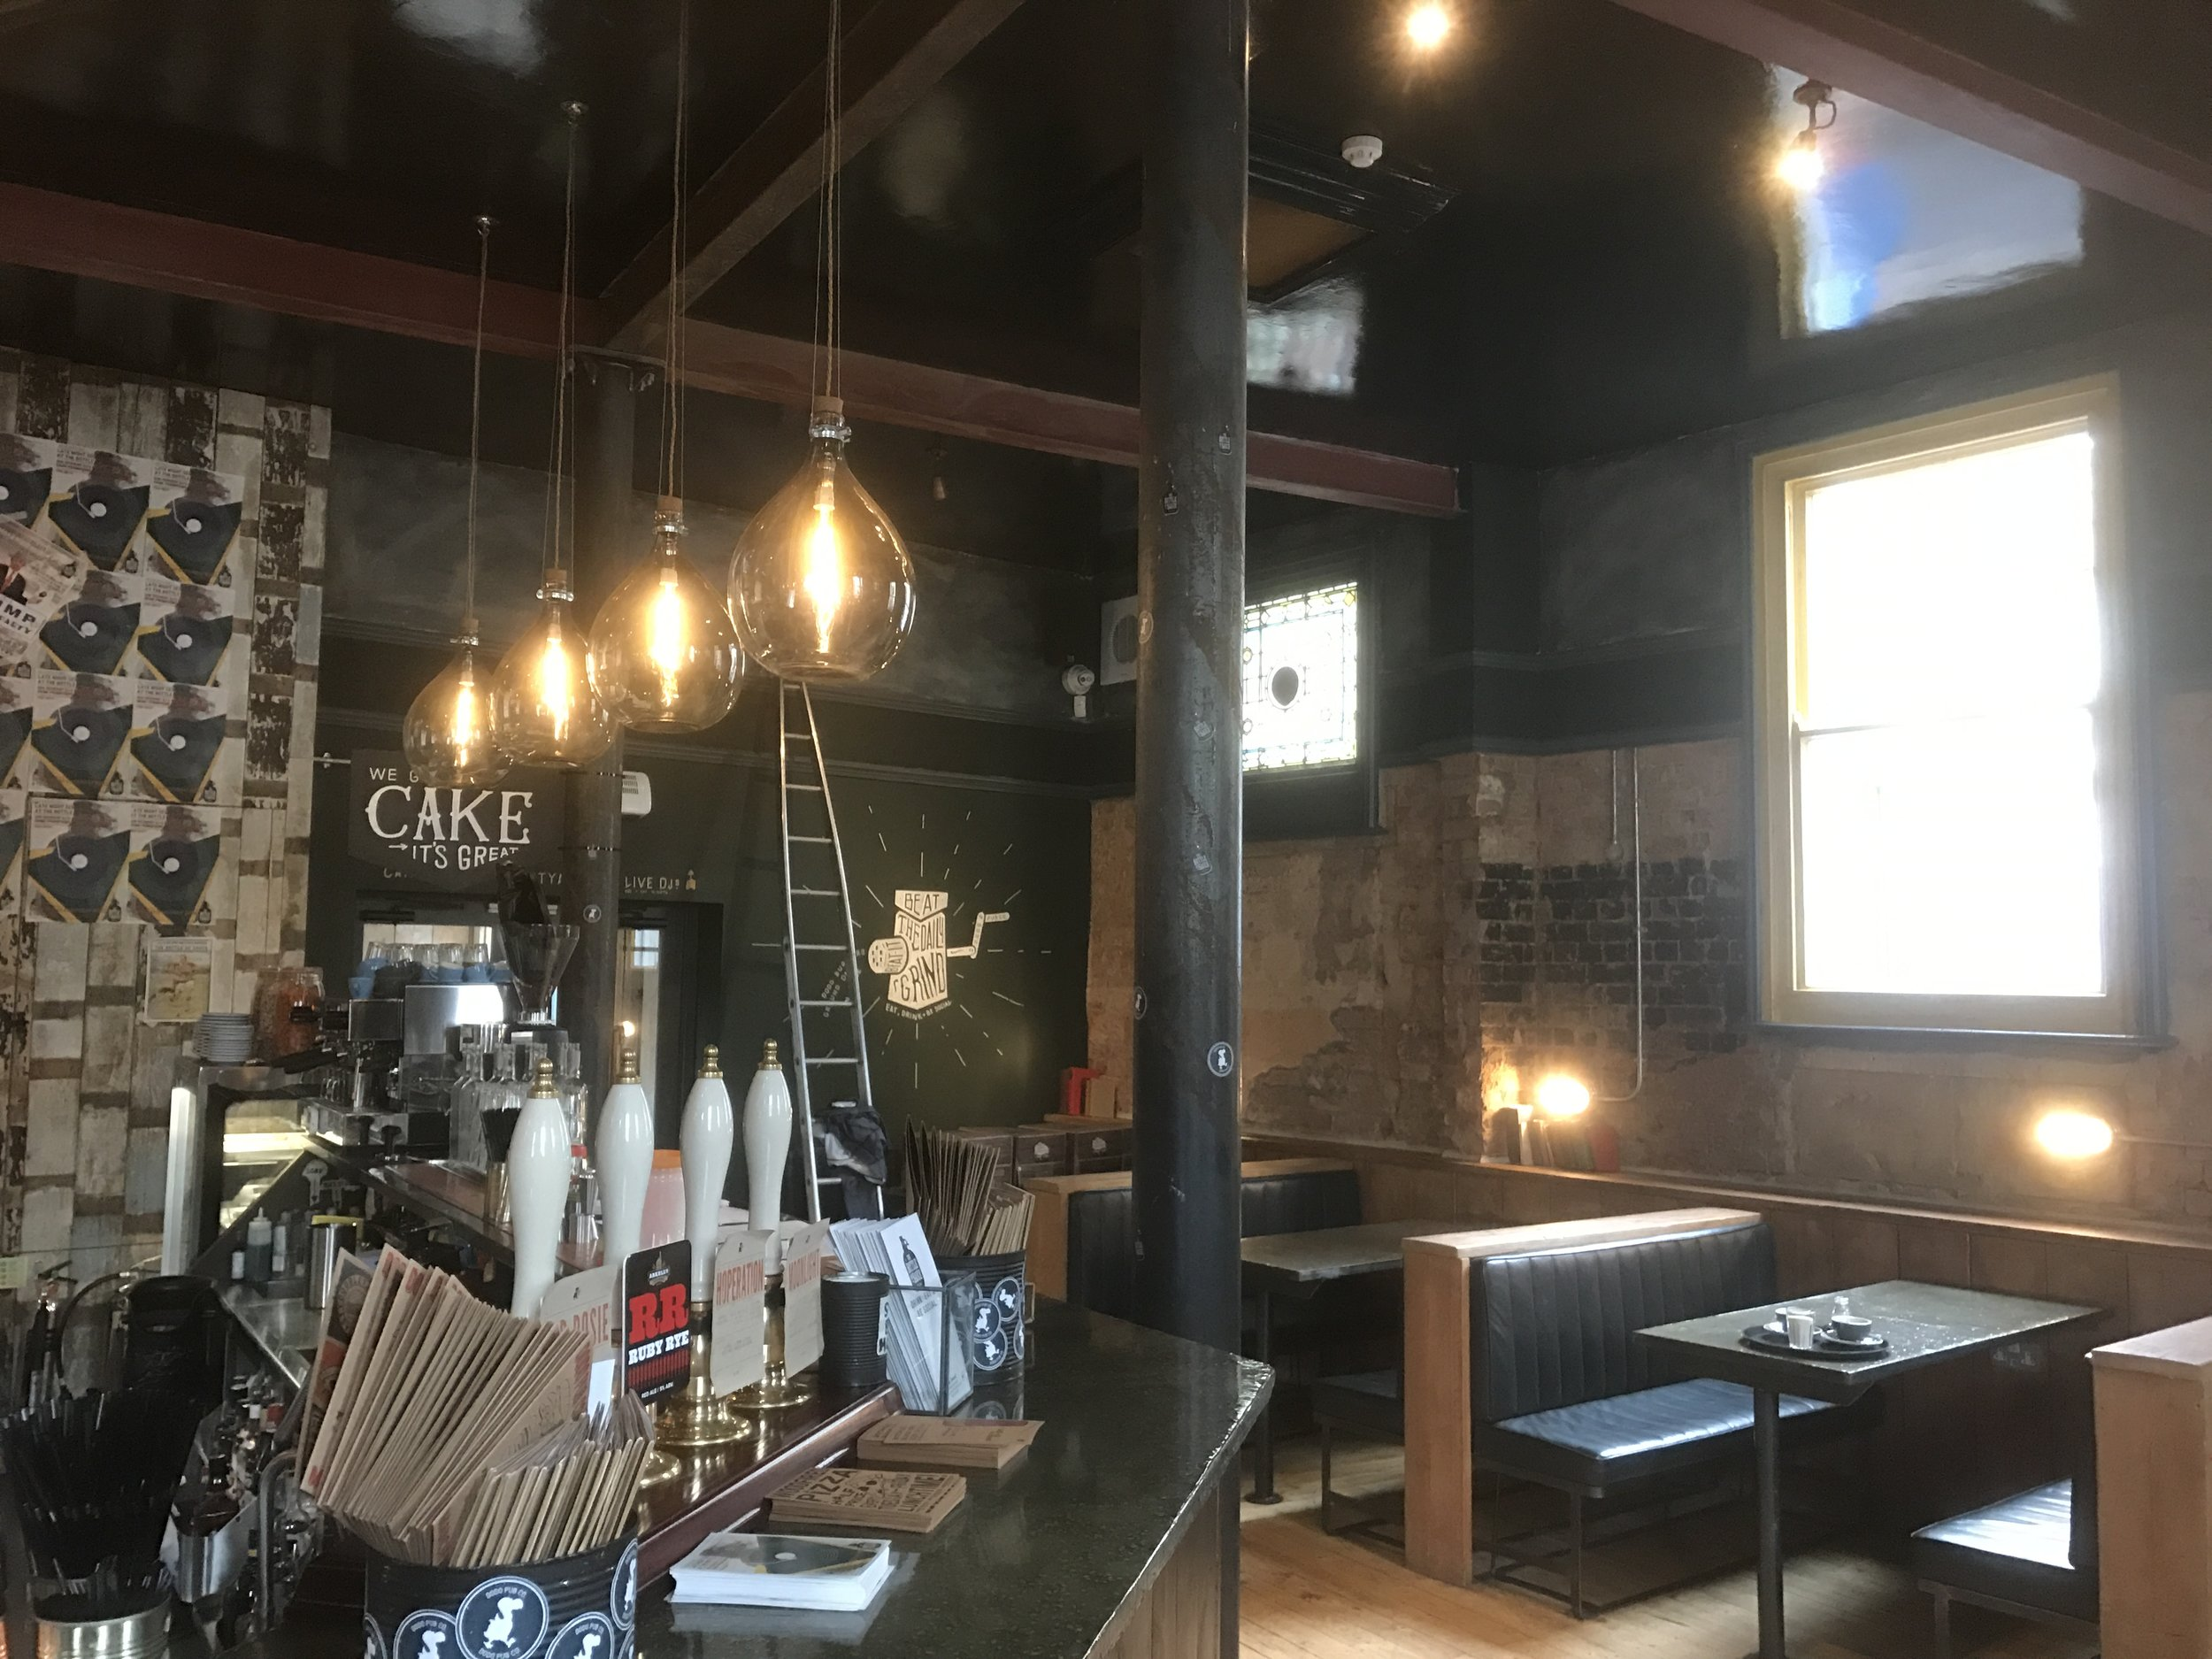 Internal view of bar with shiny windows!